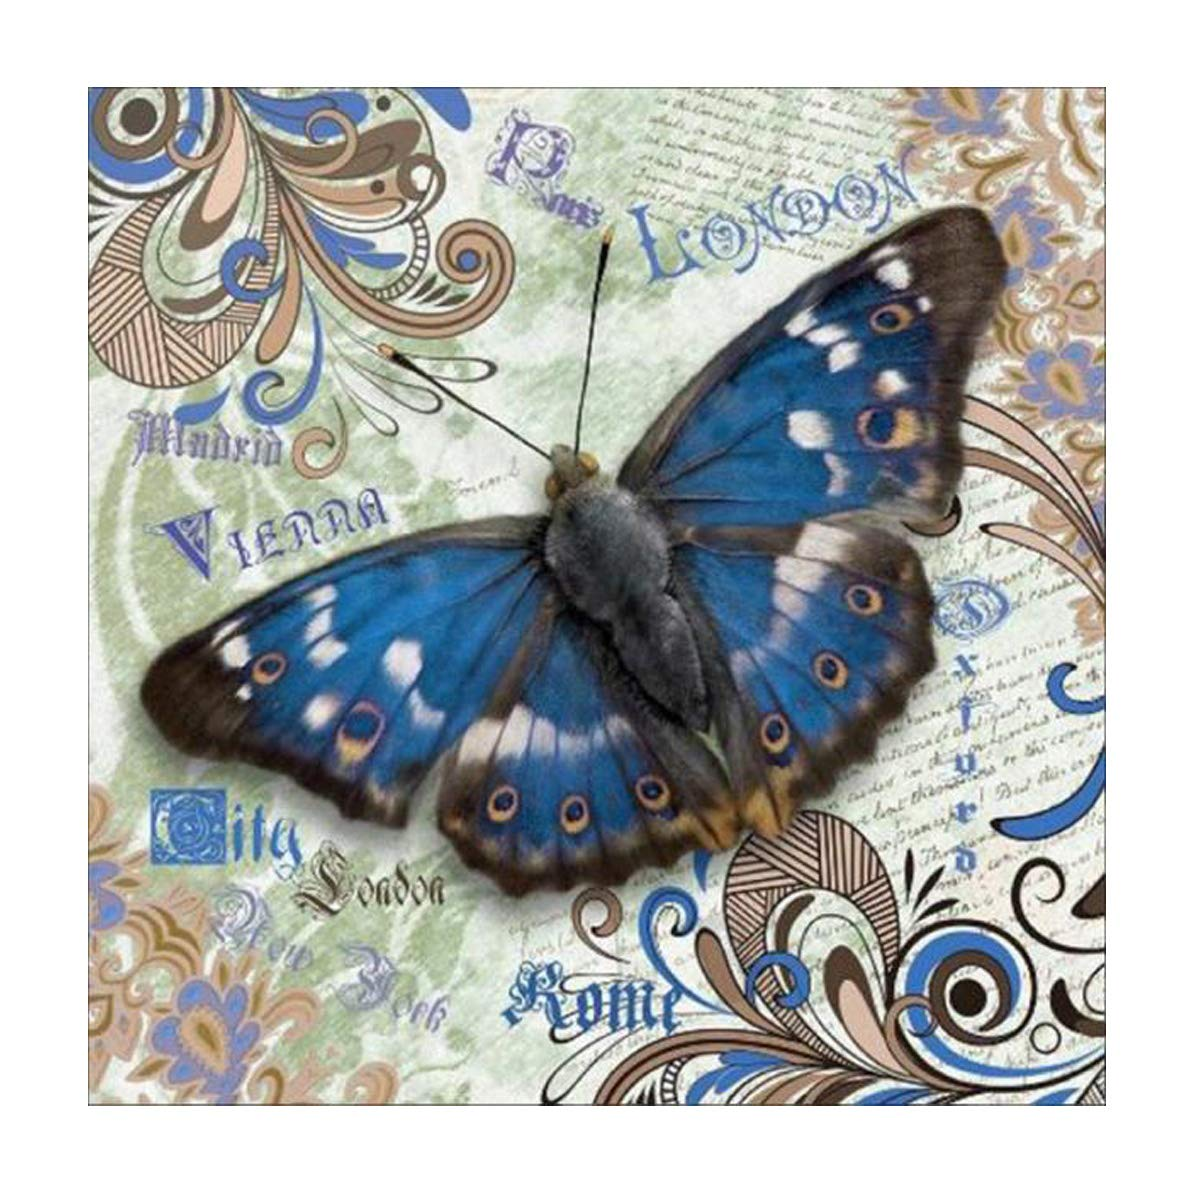 MXJSUA 5D Diamond Painting Full Round Drill Kits for Adults Pasted Embroidery Cross Stitch Arts Craft for Home Wall Decor Blue Butterfly 12x12in